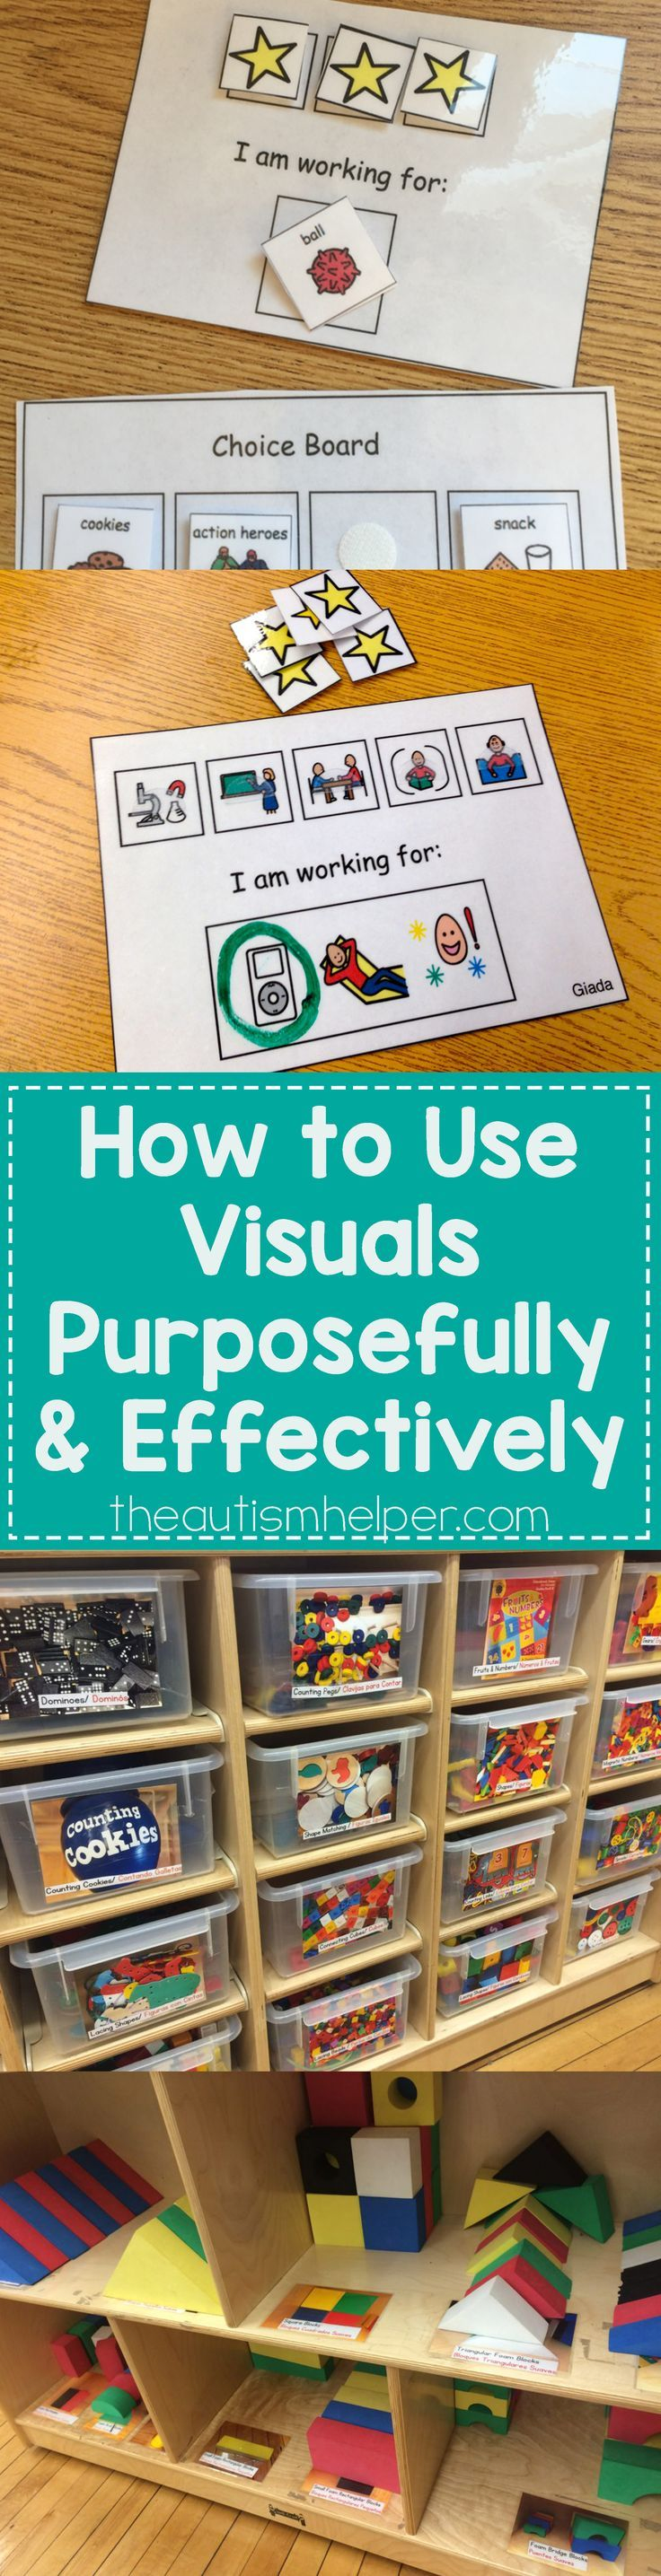 Once you've made sure you have visuals to match the verbal requests you make on a daily basis, your job isn't over. Now it's time to teach your students how to use those visuals & what they mean. Essential tips for using visuals purposefully & effectively today on the blog! From http://theautismhelper.com